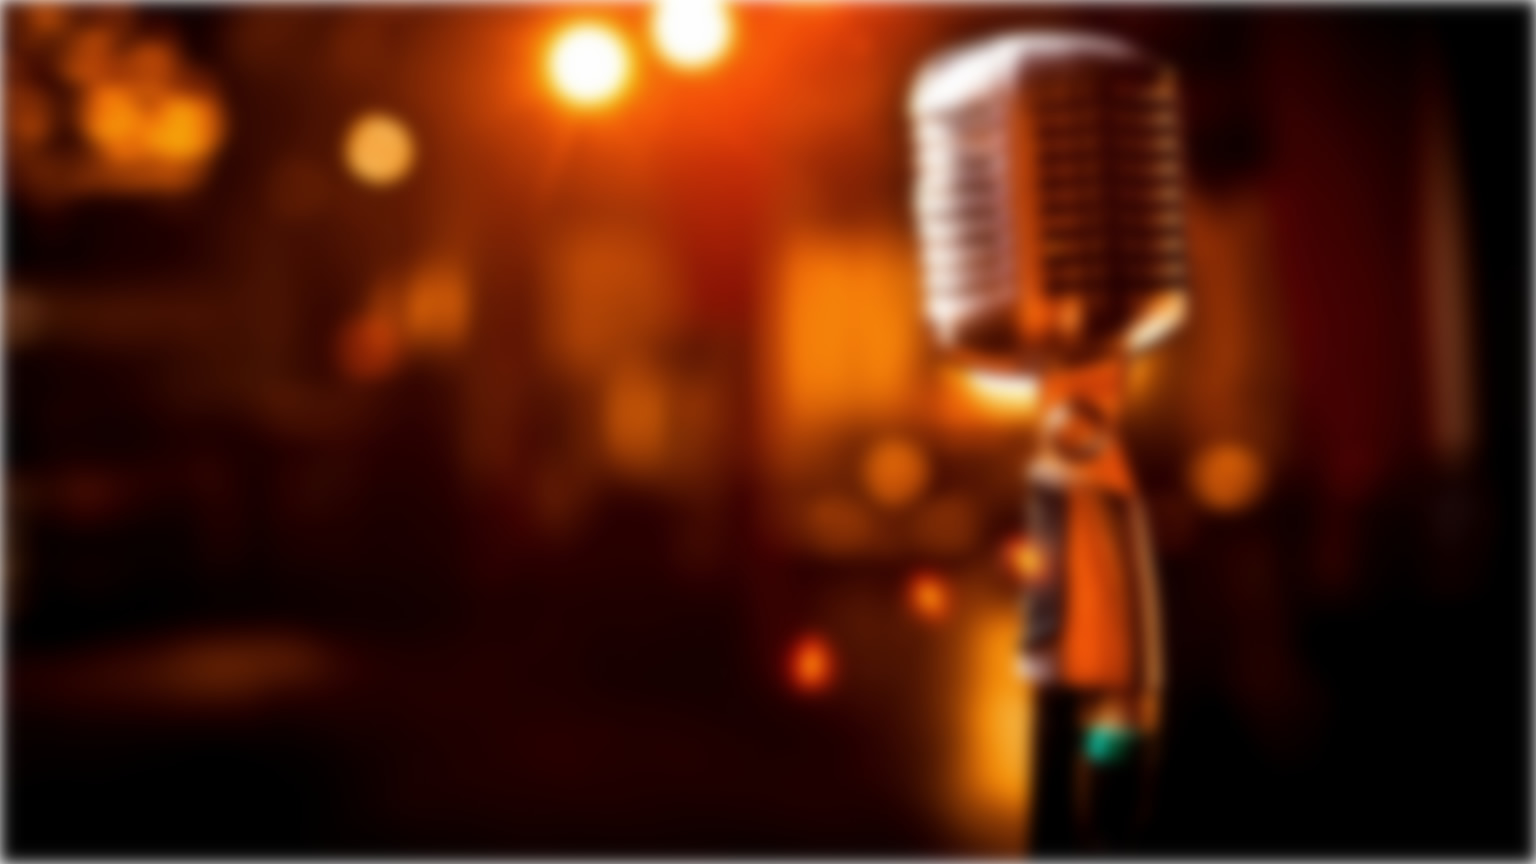 microphone-wallpaper-5